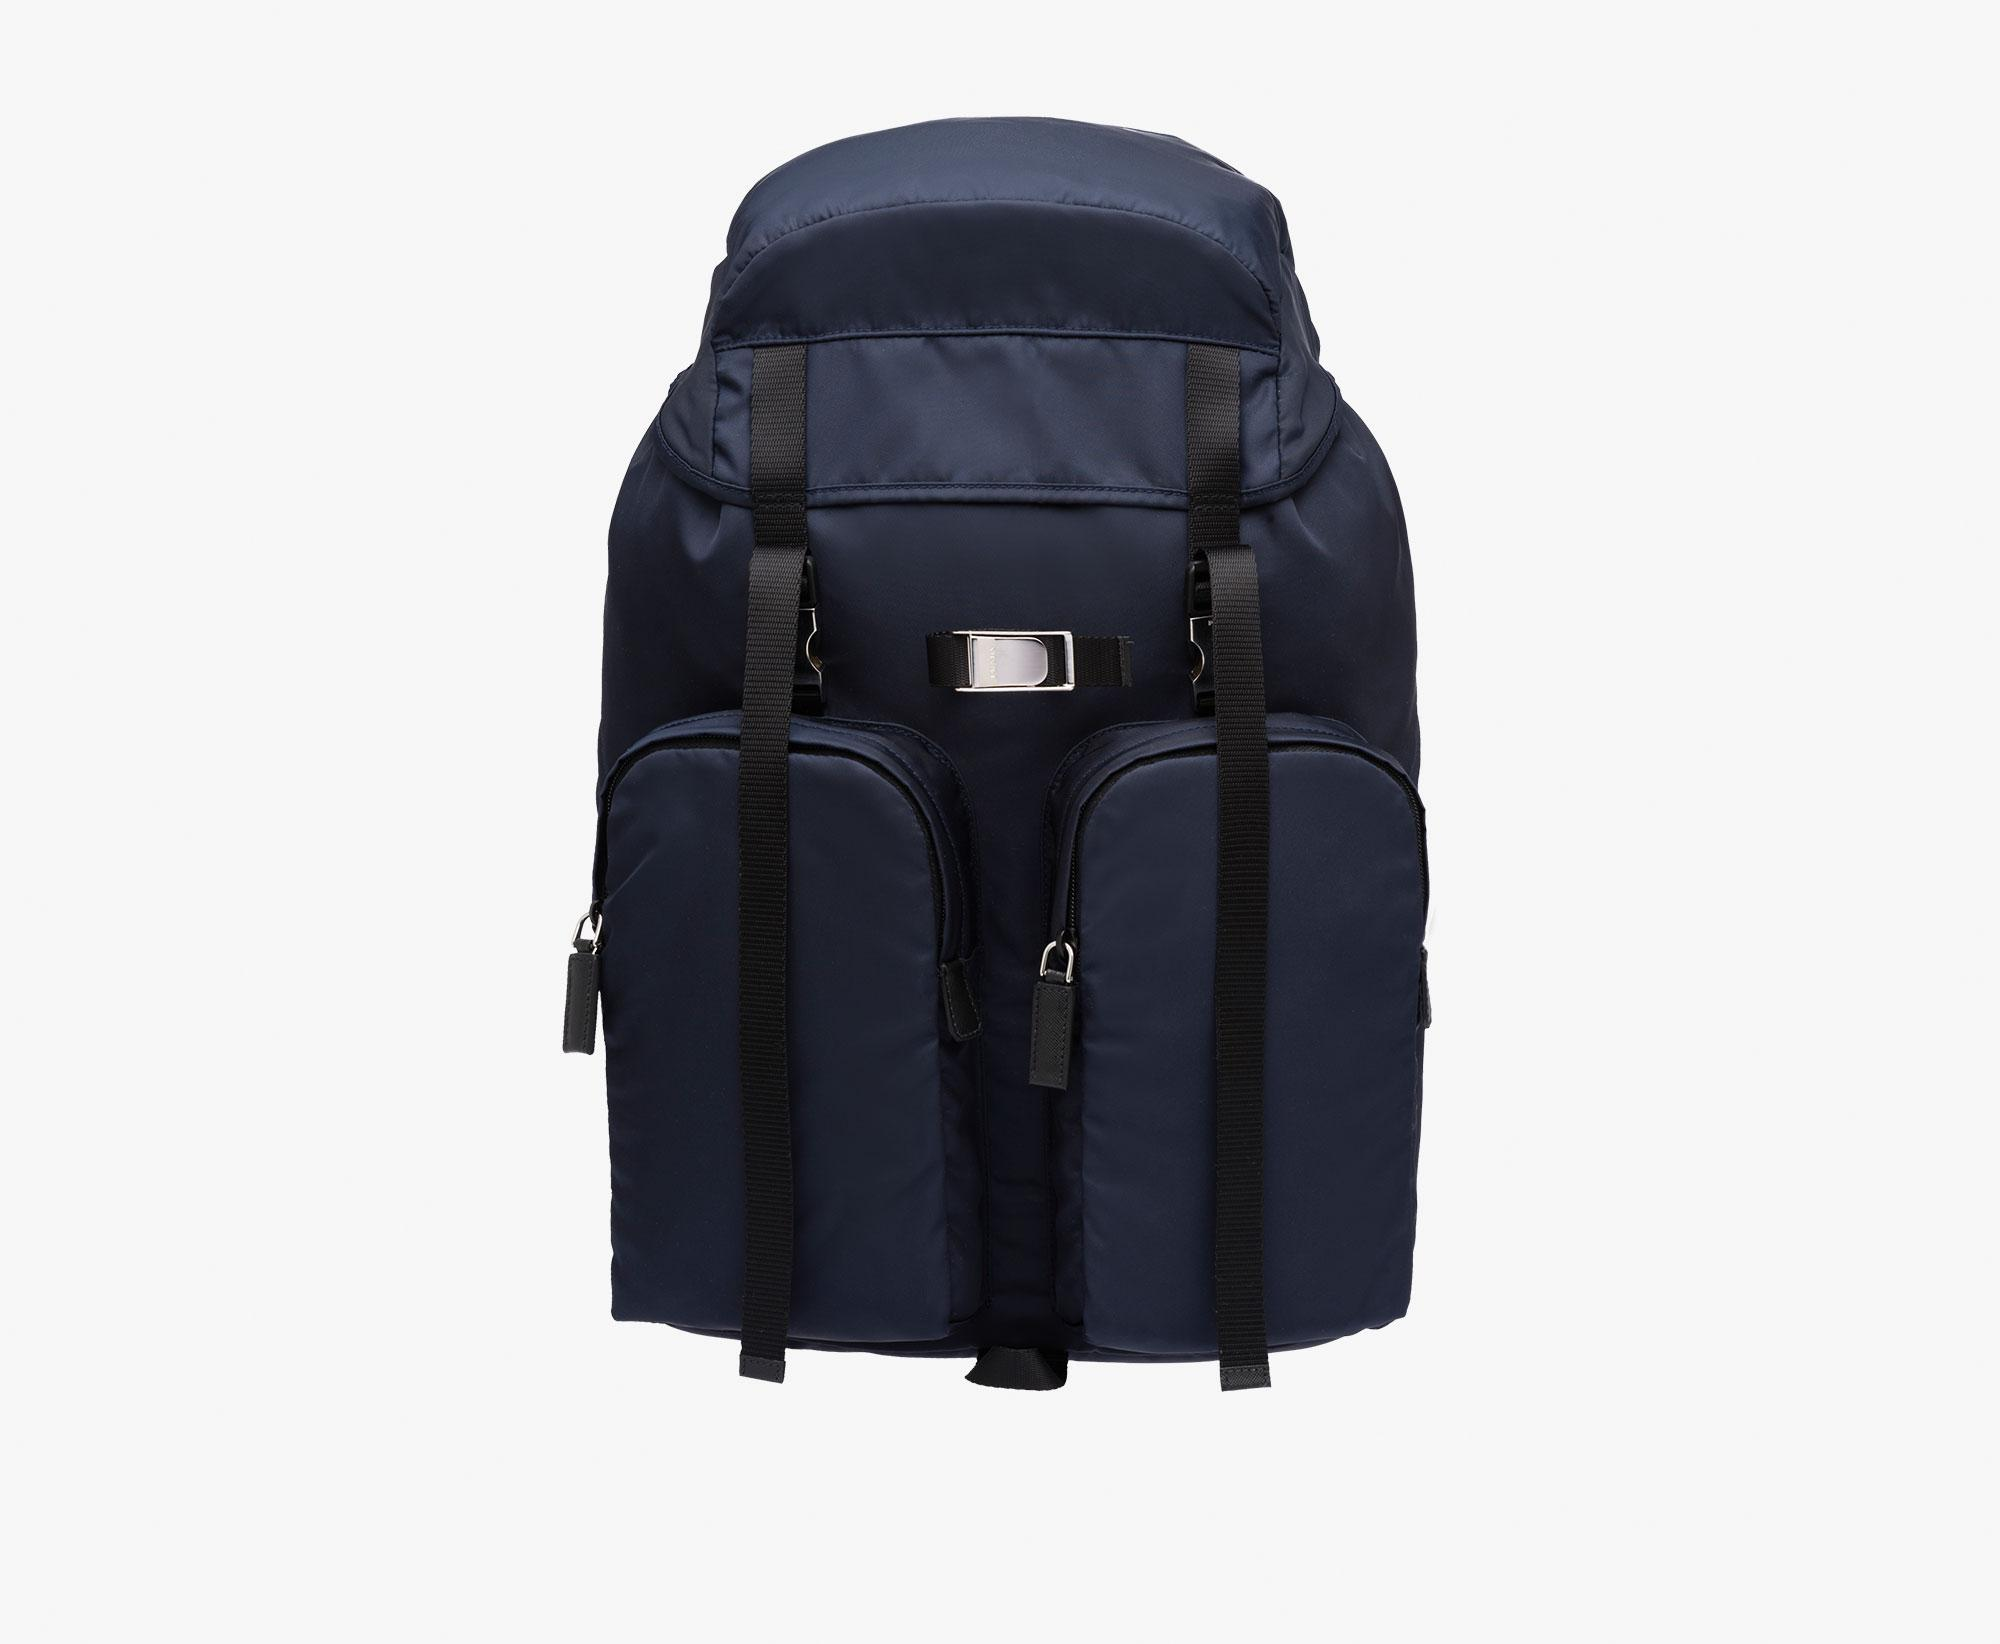 d9b4ce87b39be1 ... sale lyst prada technical fabric backpack in blue for men 1c4cb ee58f